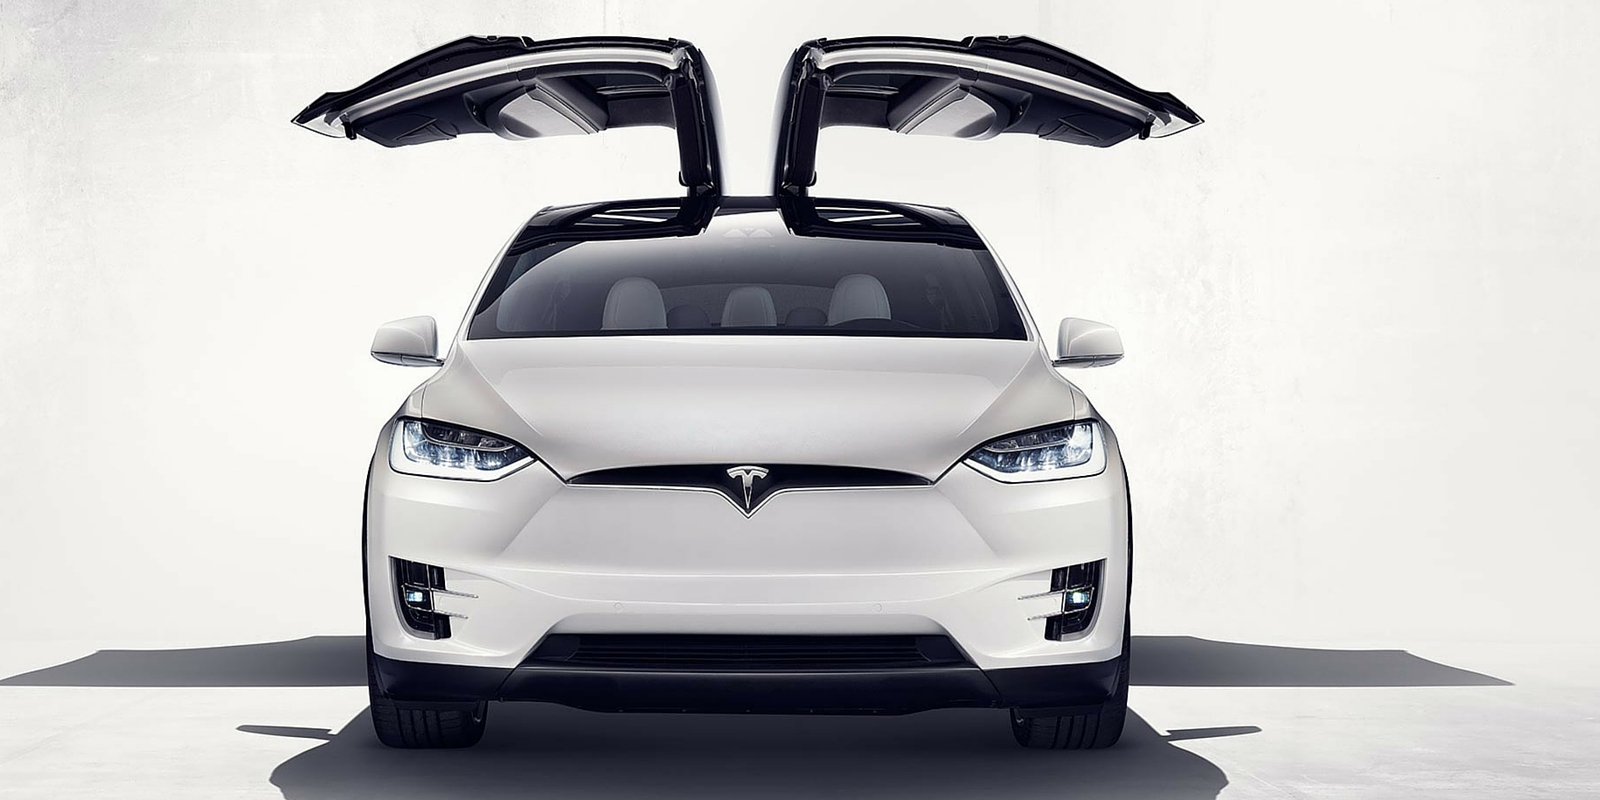 tesla model s vs model x dragstrip smackdown moto networks. Black Bedroom Furniture Sets. Home Design Ideas